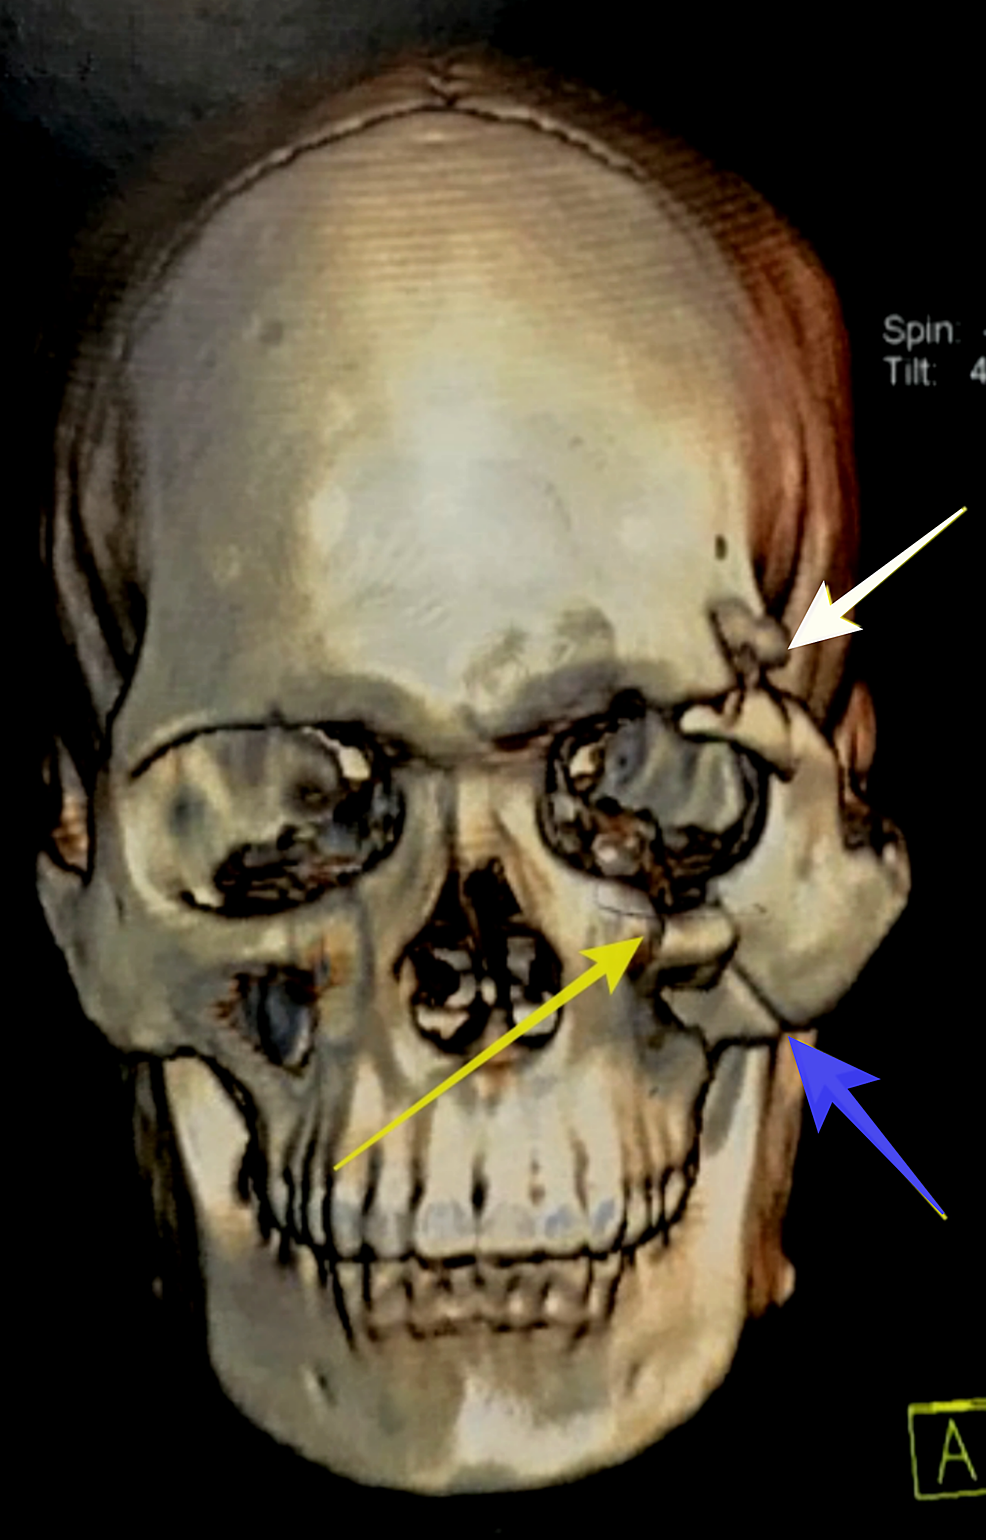 Virtual-three-dimensional-reconstruction-of-computed-tomography-scan-demonstrating-fracture-at-left-front-zygomatic-region-(white-arrow),-left-zygomatic-maxillary-buttress-(blue-arrow),-left-infra-orbital-rim-(yellow-arrow).